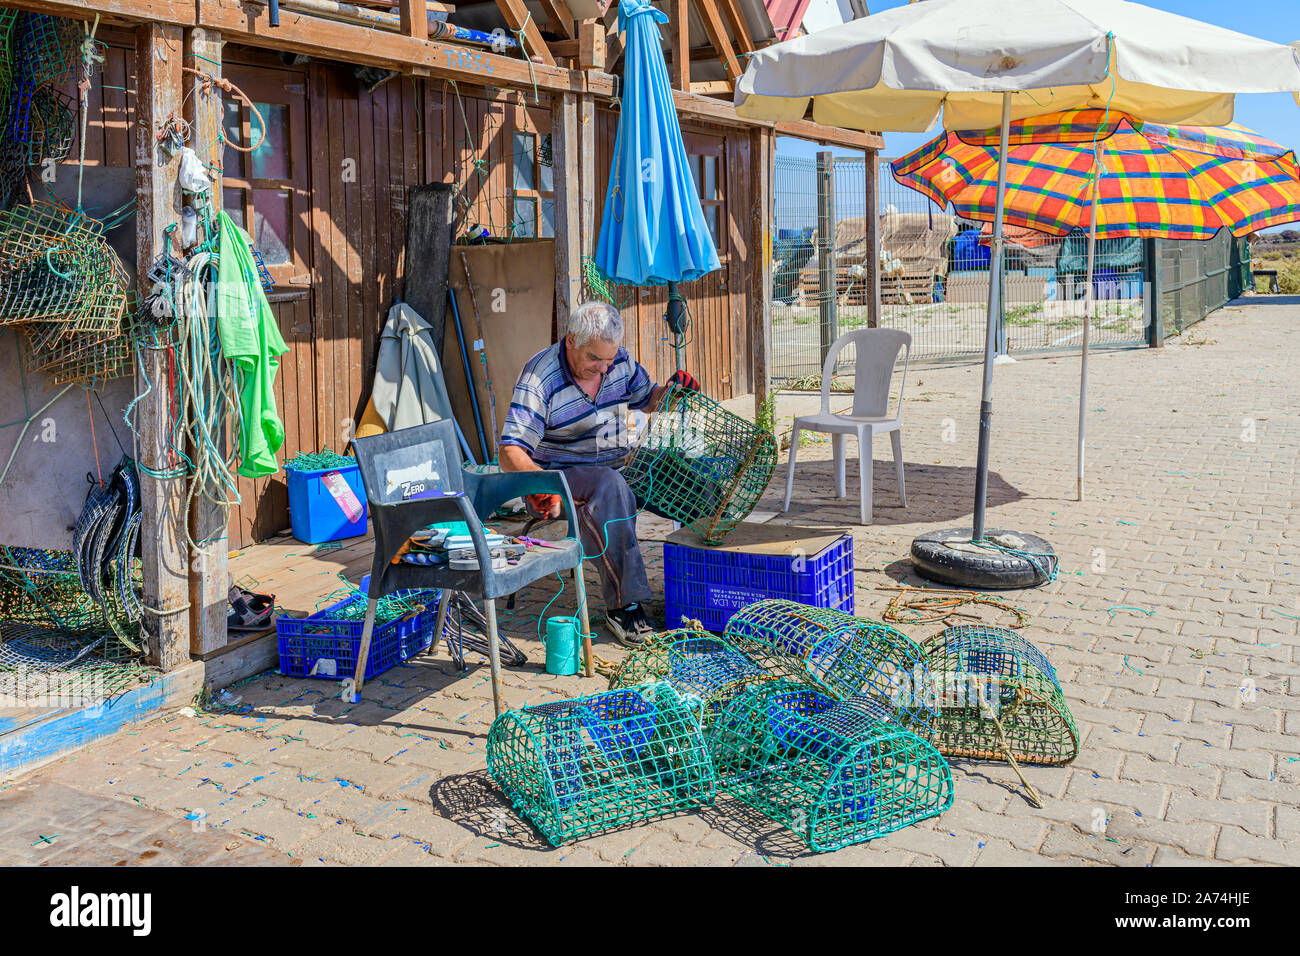 09.16.2019. Algarve, Portugal. Local fisherman repairing octopus traps, Santa Luzia, East Algarve Stock Photo